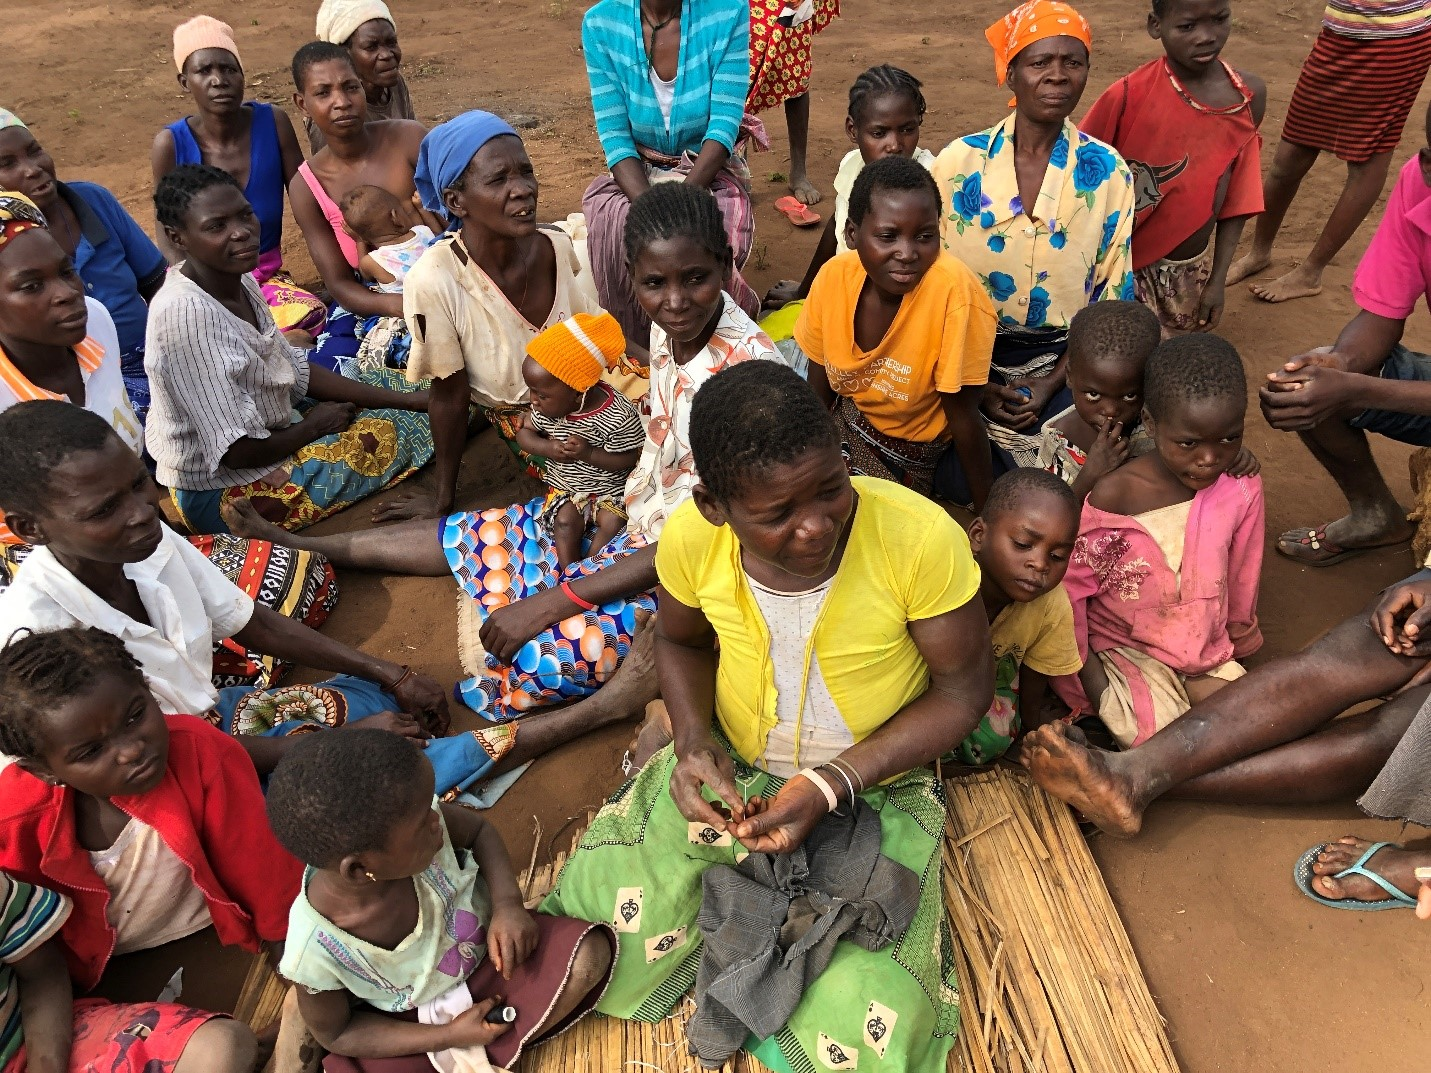 Displaced women gather in a resettlement site in central Mozambique.